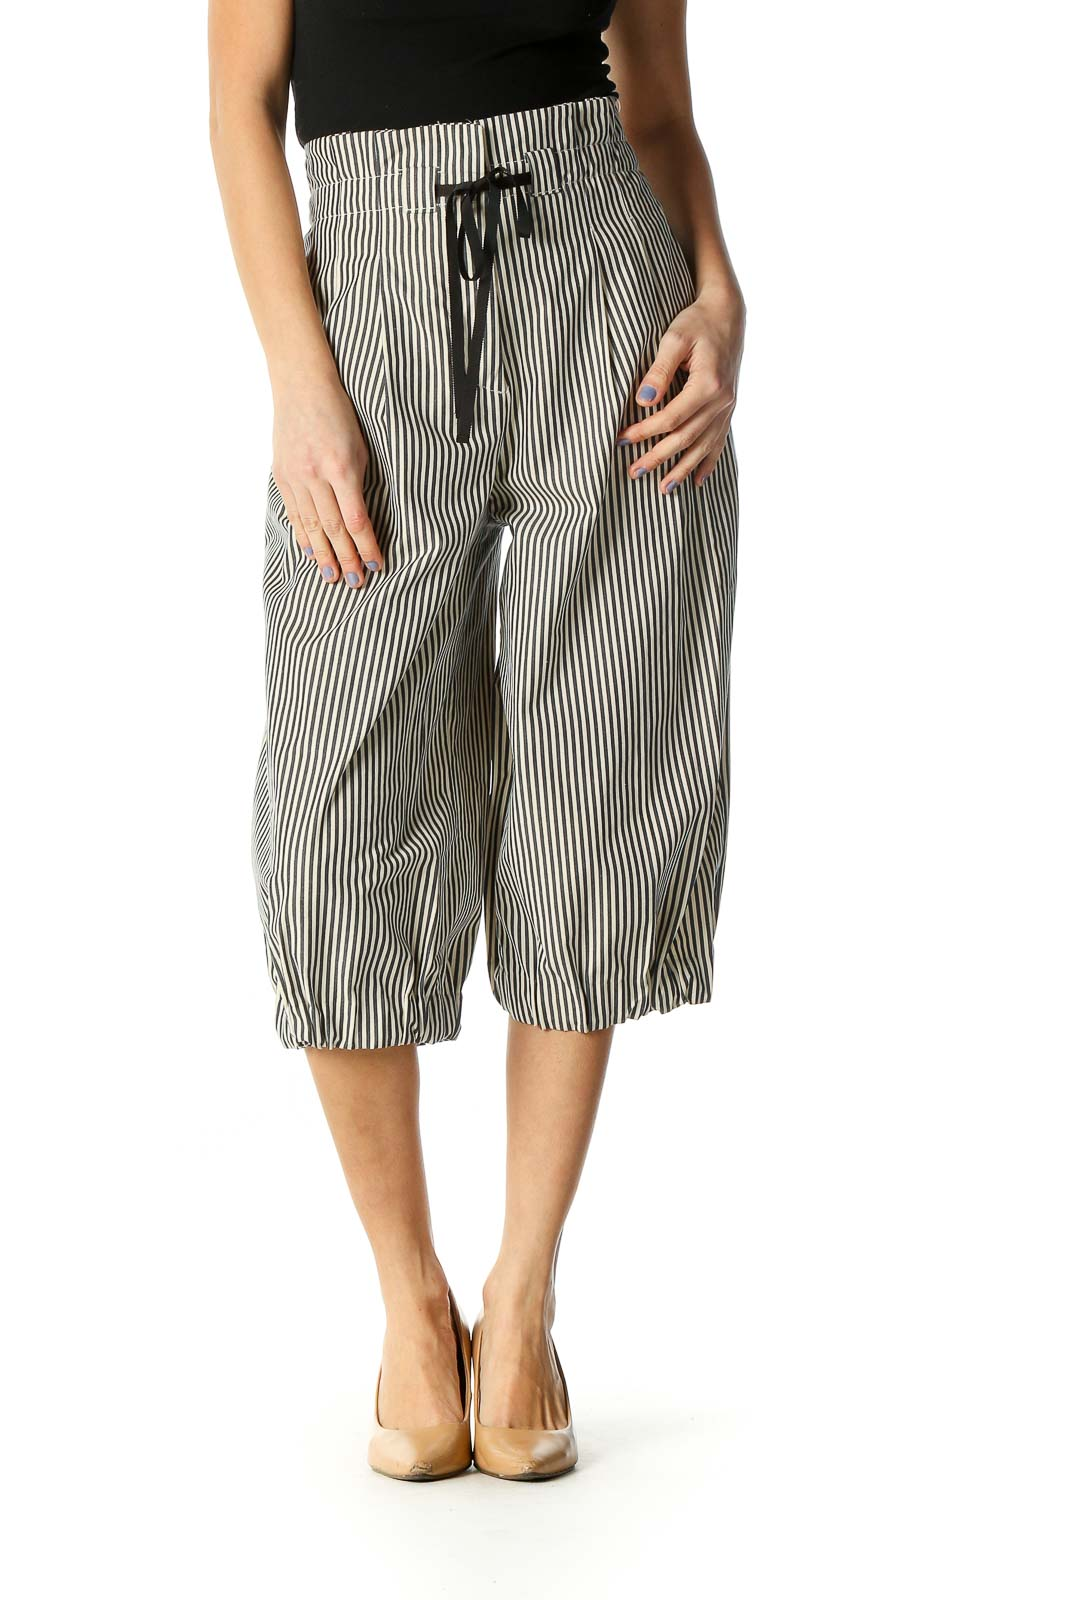 Beige Striped Chic Culottes Pants Front